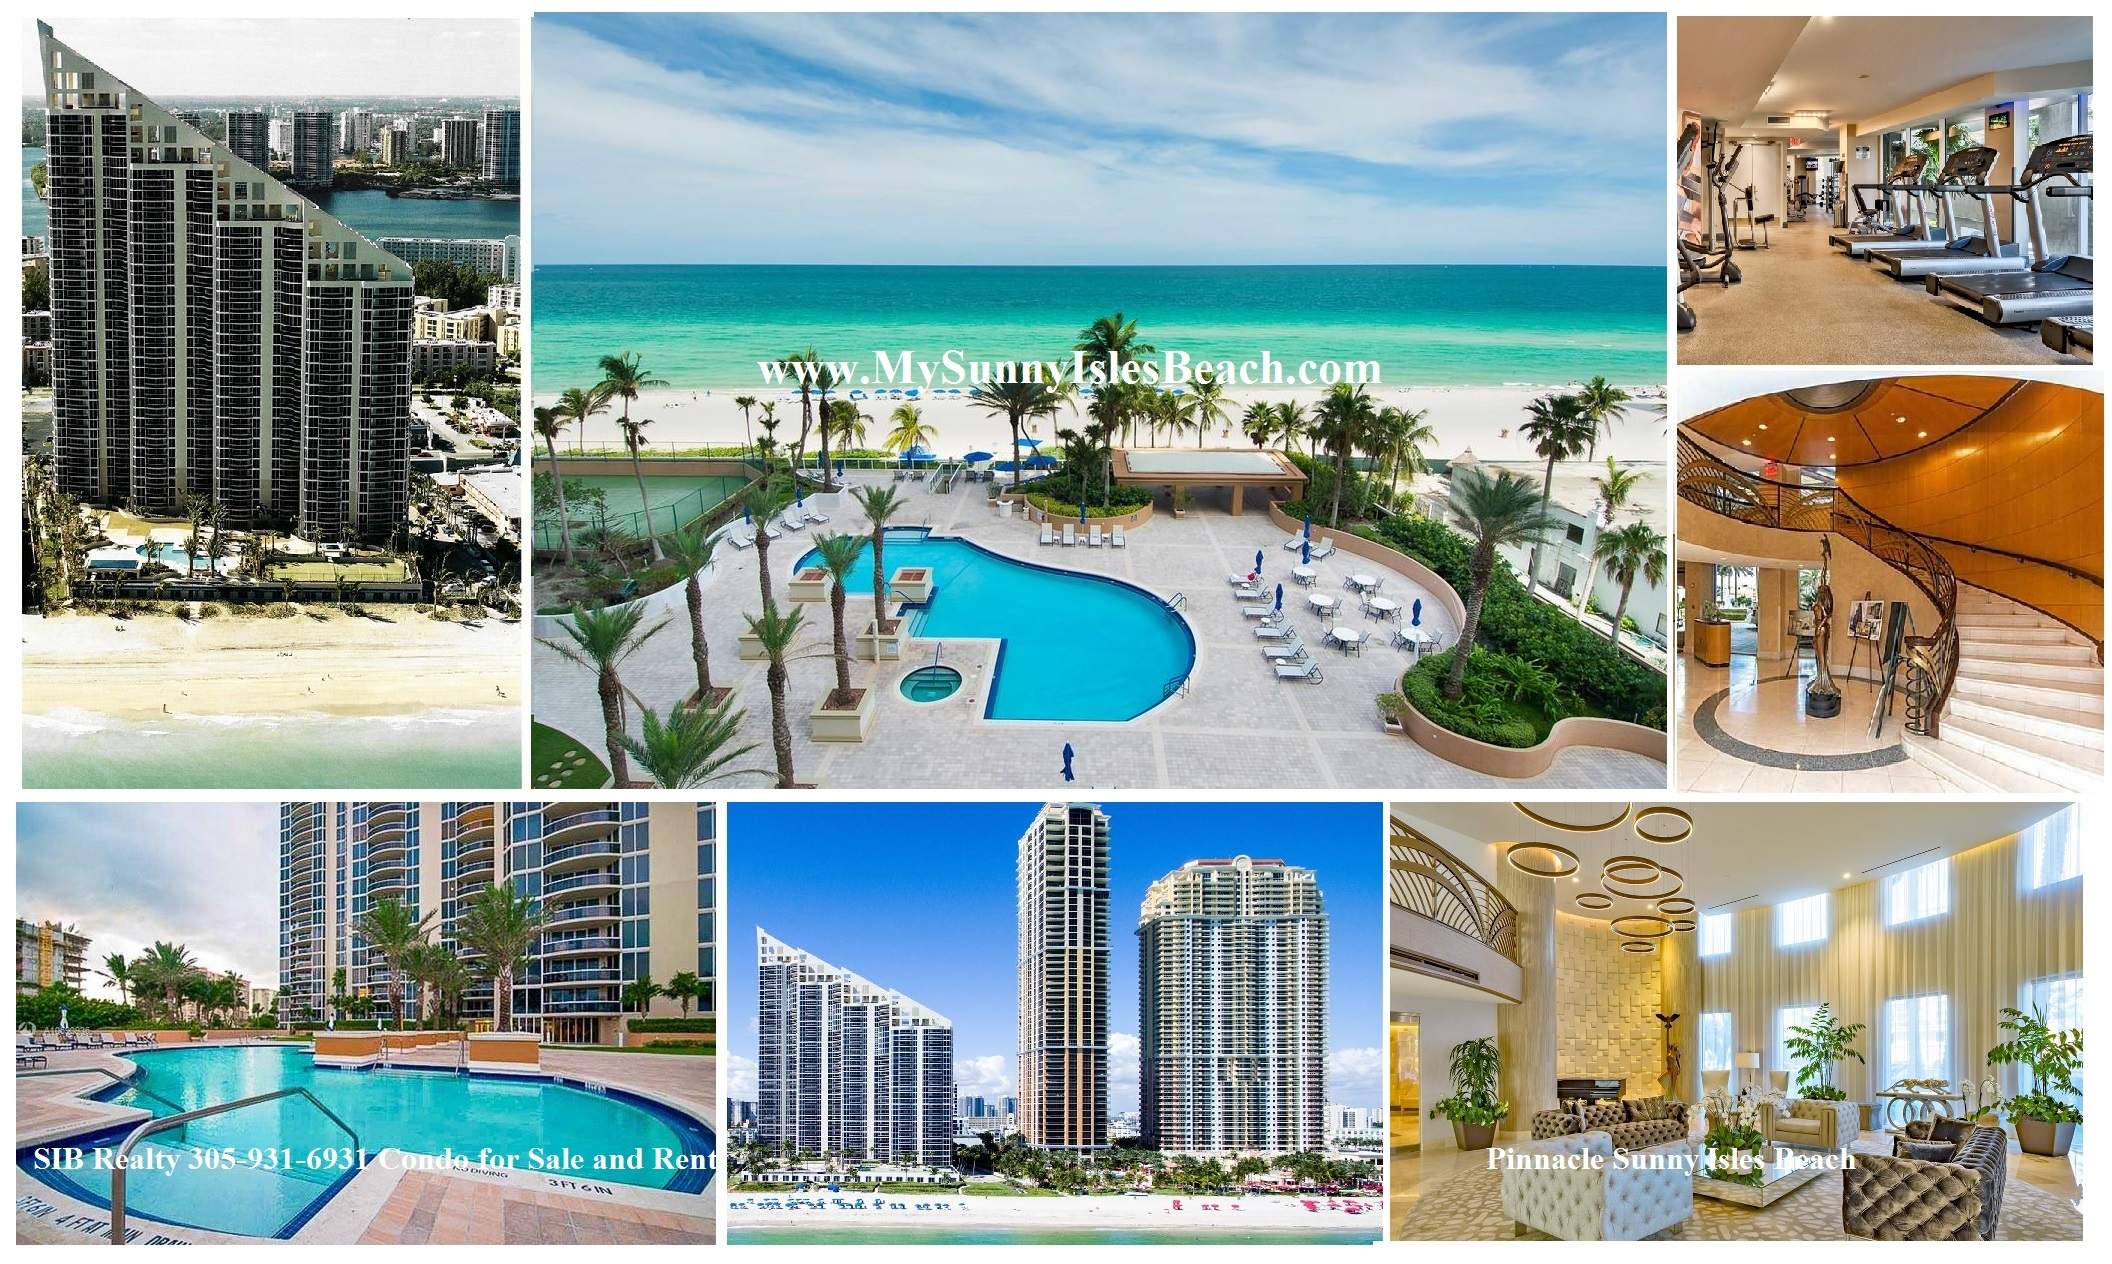 Pinnacle Sunny Isles Beach Condo for Sale with SIB Realty